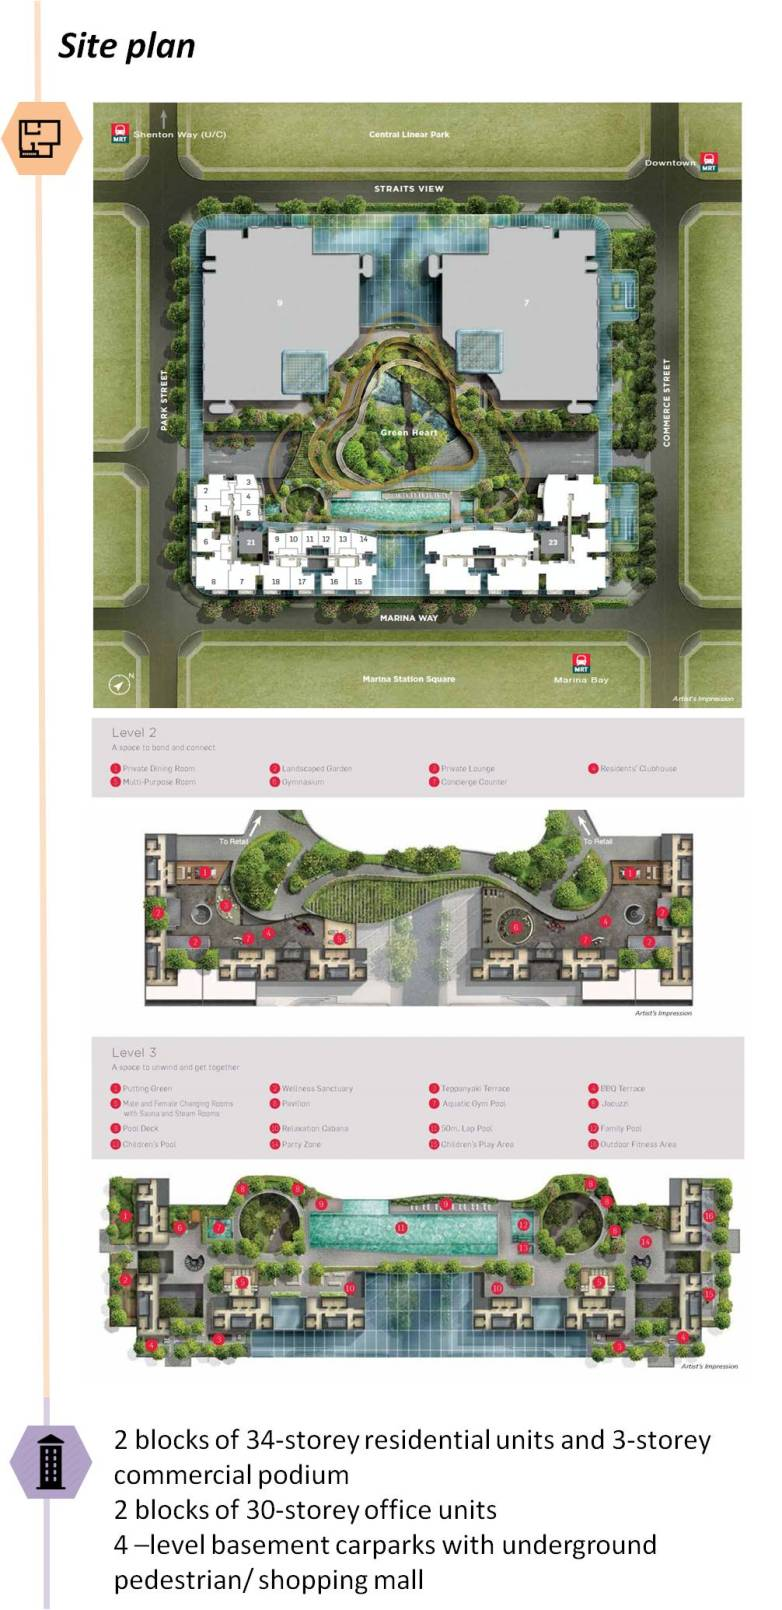 saleapartmentsingapore - marina one residences site plan